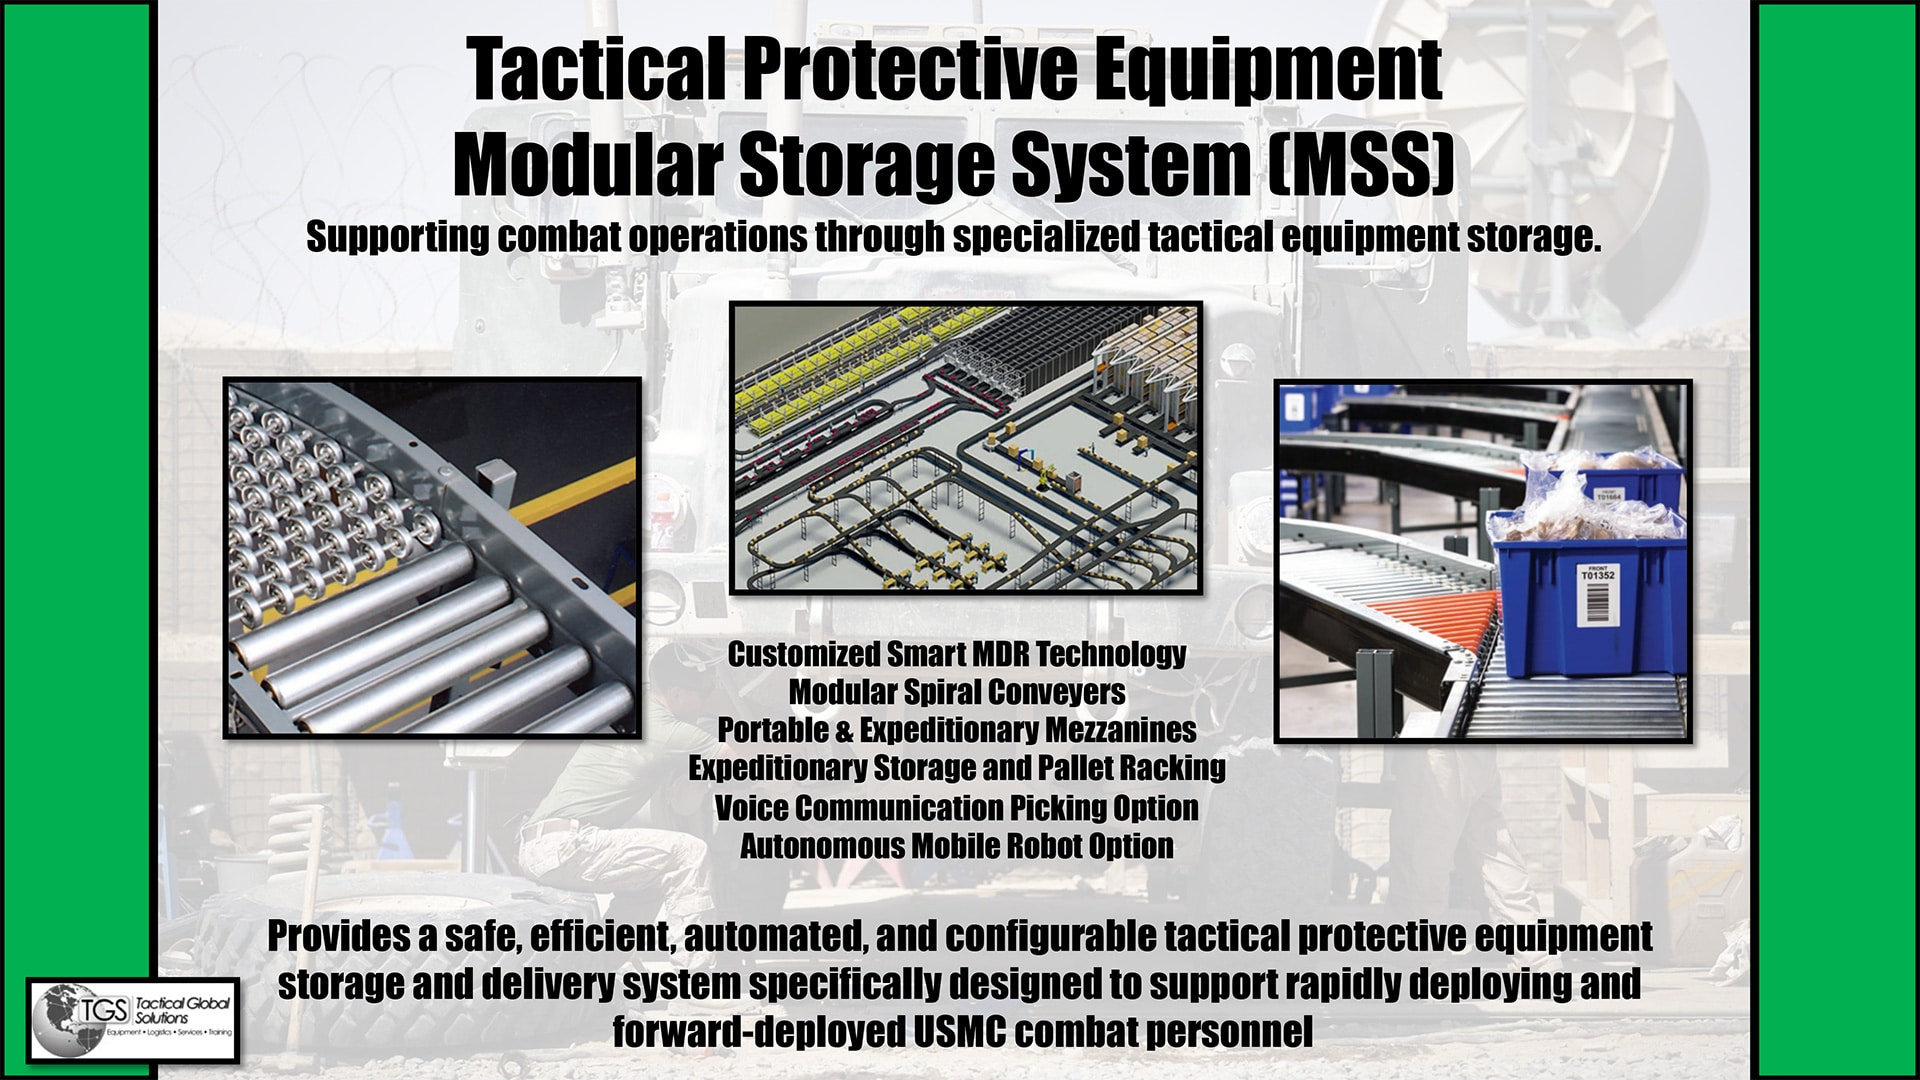 TGS Tactical Protective Equipment Modular Storage System